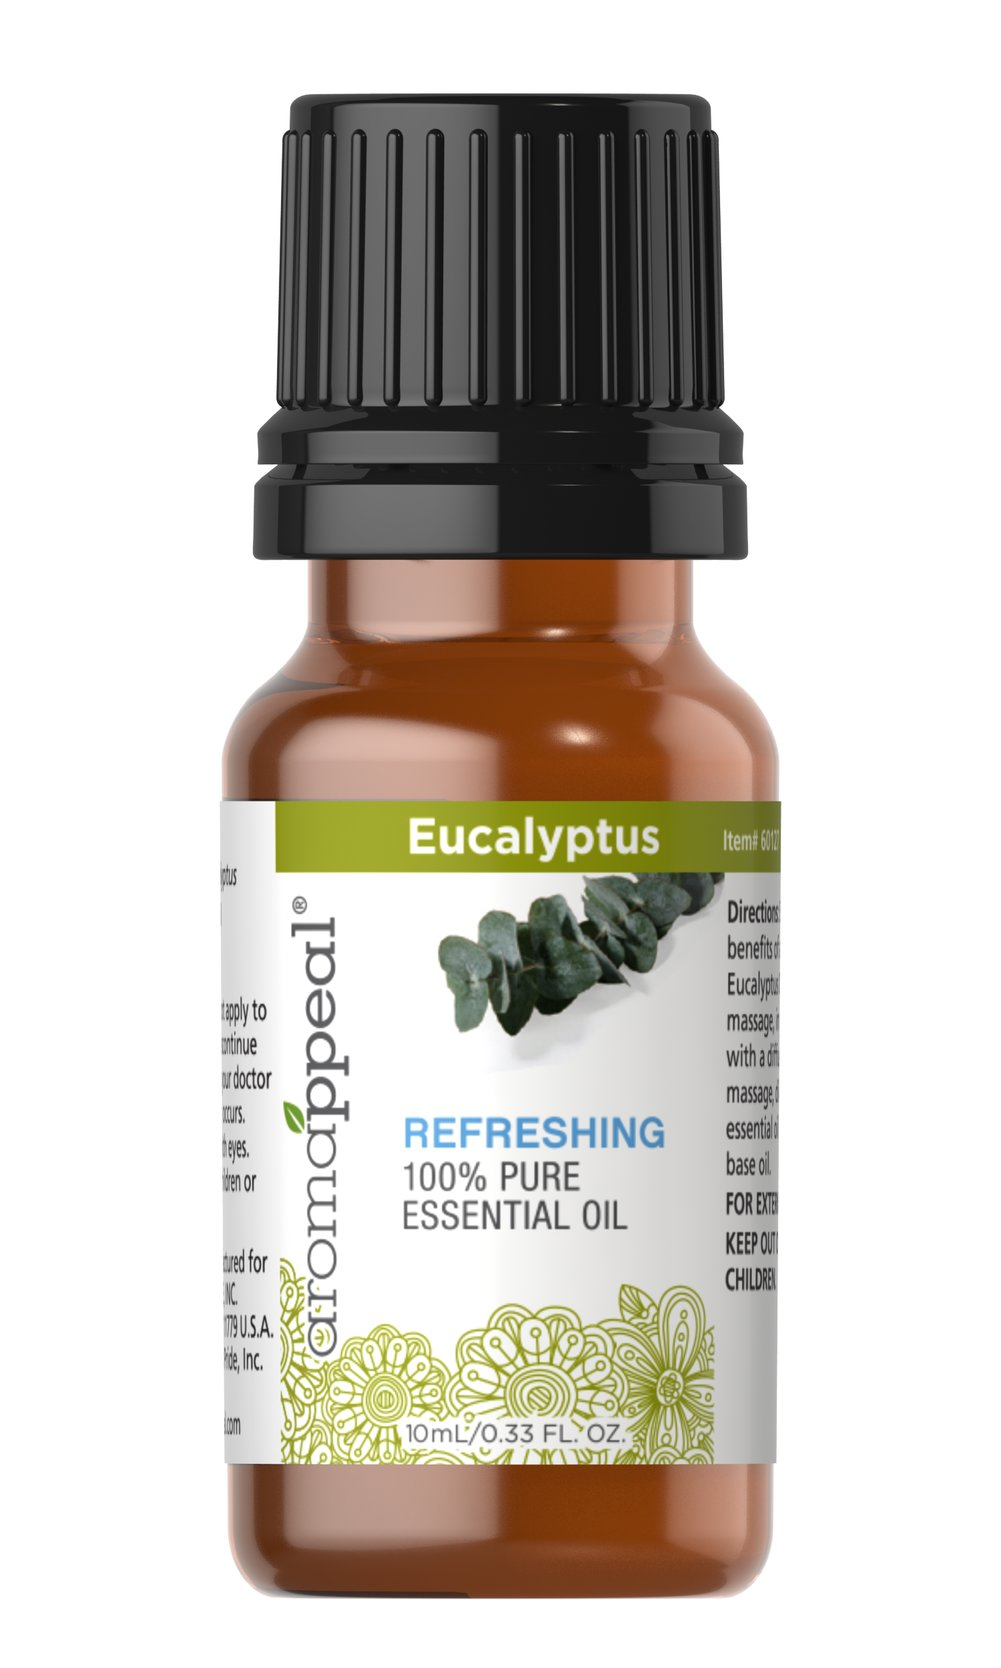 "Eucalyptus 100% Pure Essential Oil <p>Eucalyptus has a powerfully woody, slightly sweet scent that can cultivate your senses and refresh your outlook. </p><ul><li><span class=""bold-pink"">Traditional Uses:</span> Soothing, rejuvenating, and uplifting.<br /></li><li><span class=""bold-pink"">History:</span>  Eucalyptus has a powerfully woody, slightly sweet scent that can  cultivate your senses and refresh your out"